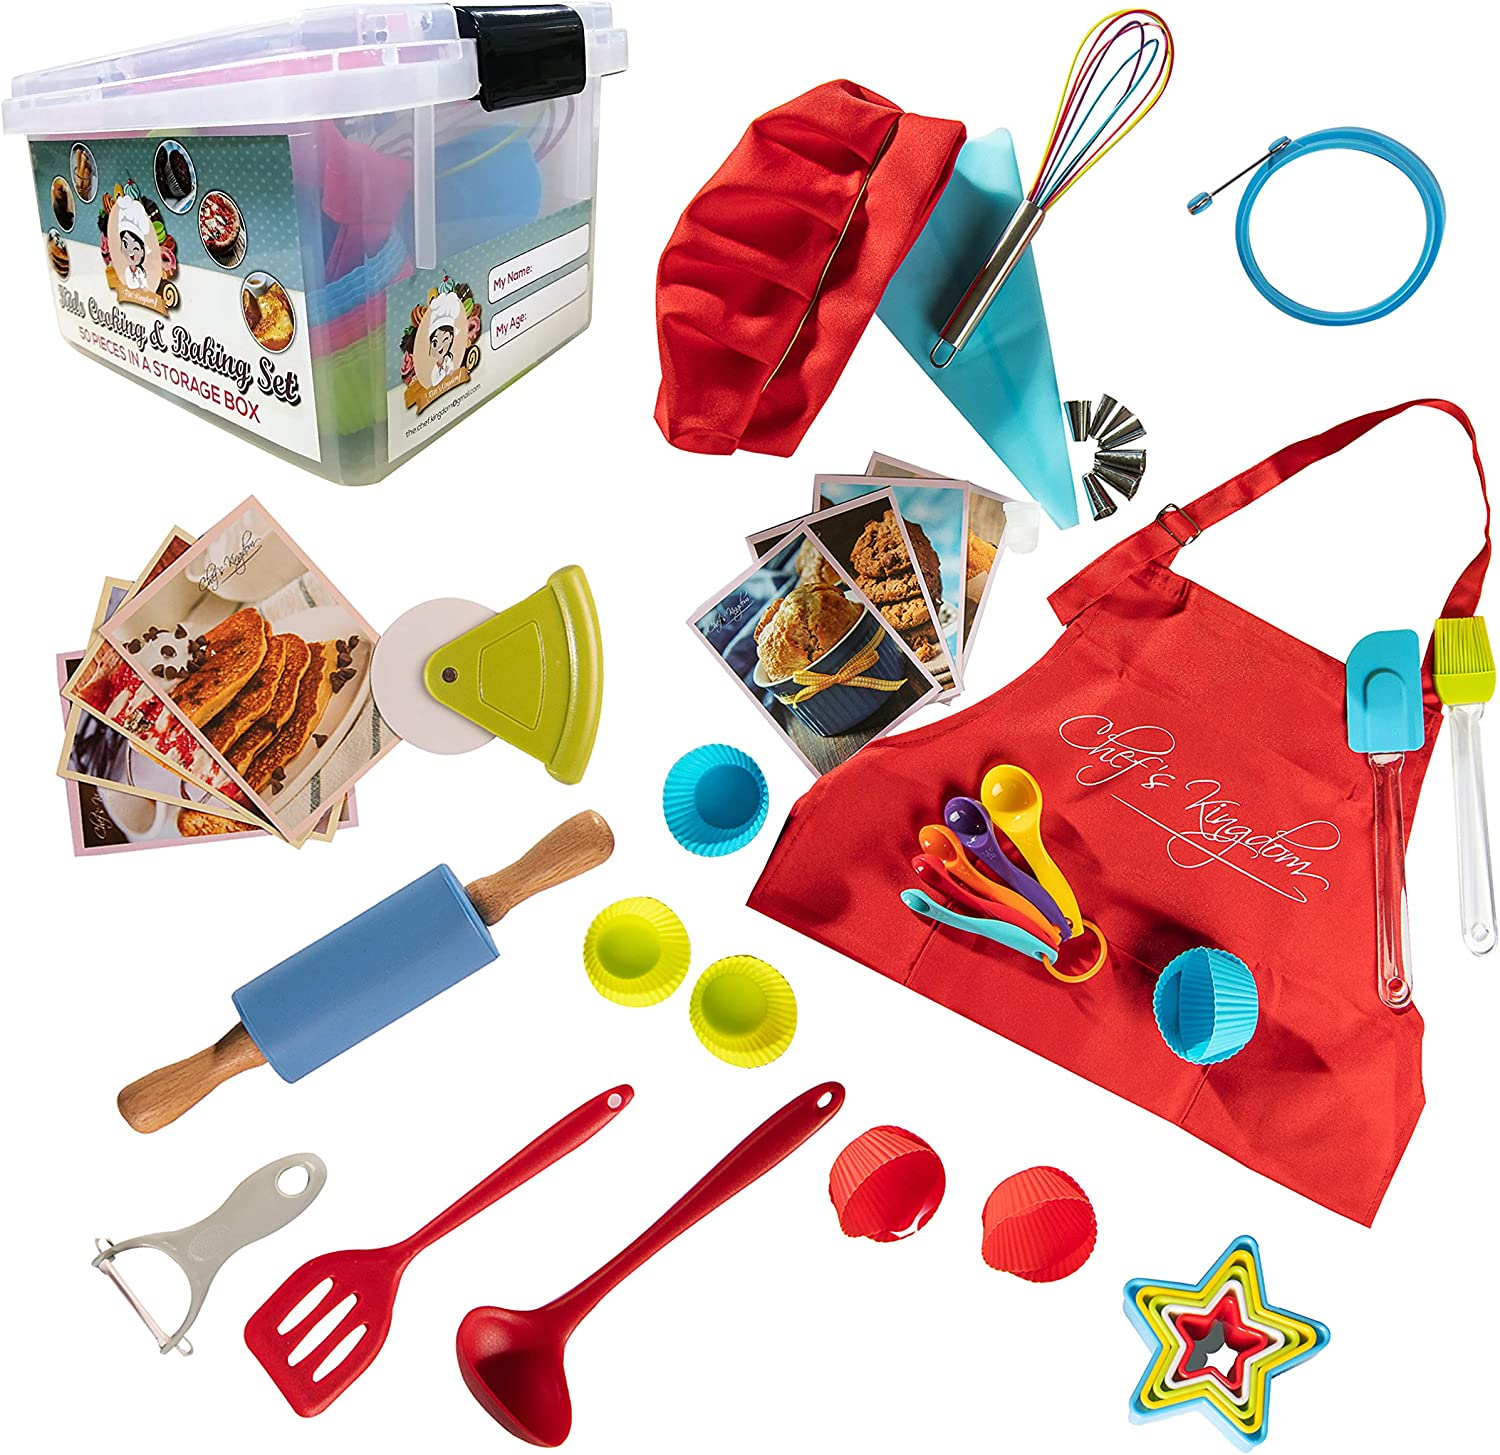 Riki's kingdom Kids Deluxe 50-Piece real baking/cooking set in a storage box with recipes/Cupcake cups/decorating kit/Cookie Cutters/Measuring Spoons/whisk/Rolling Pin (Kids set with Apron&chef Hat)